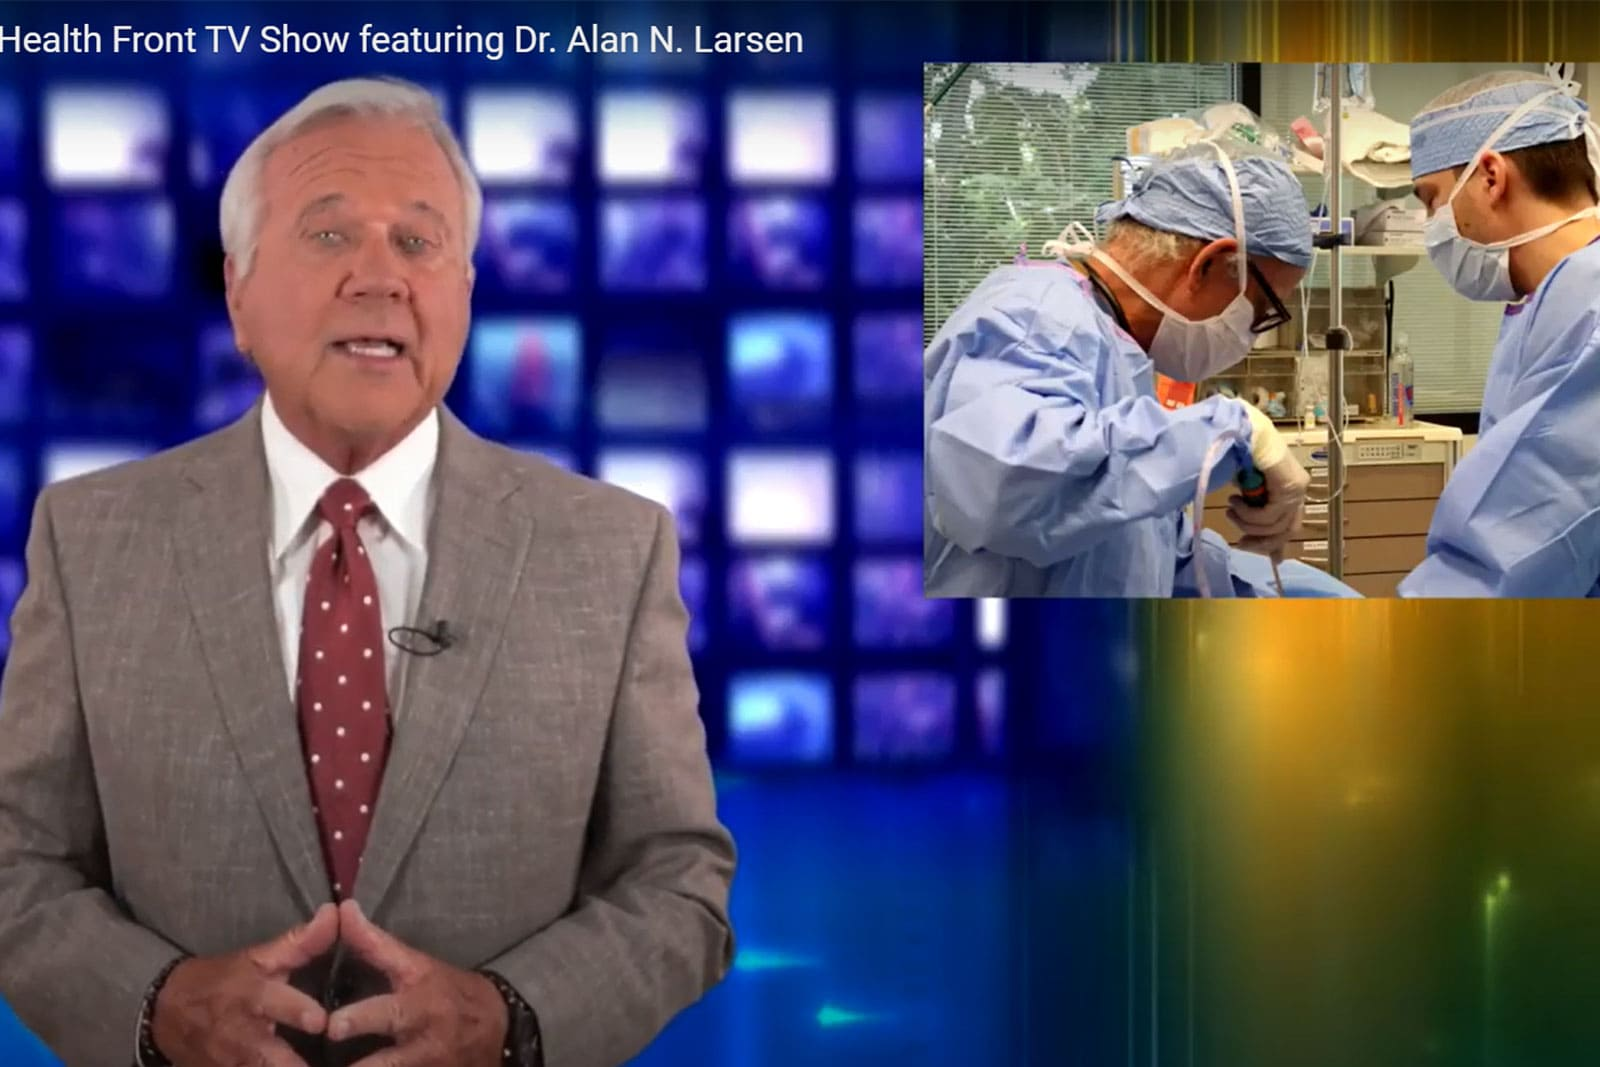 Health Front TV Show